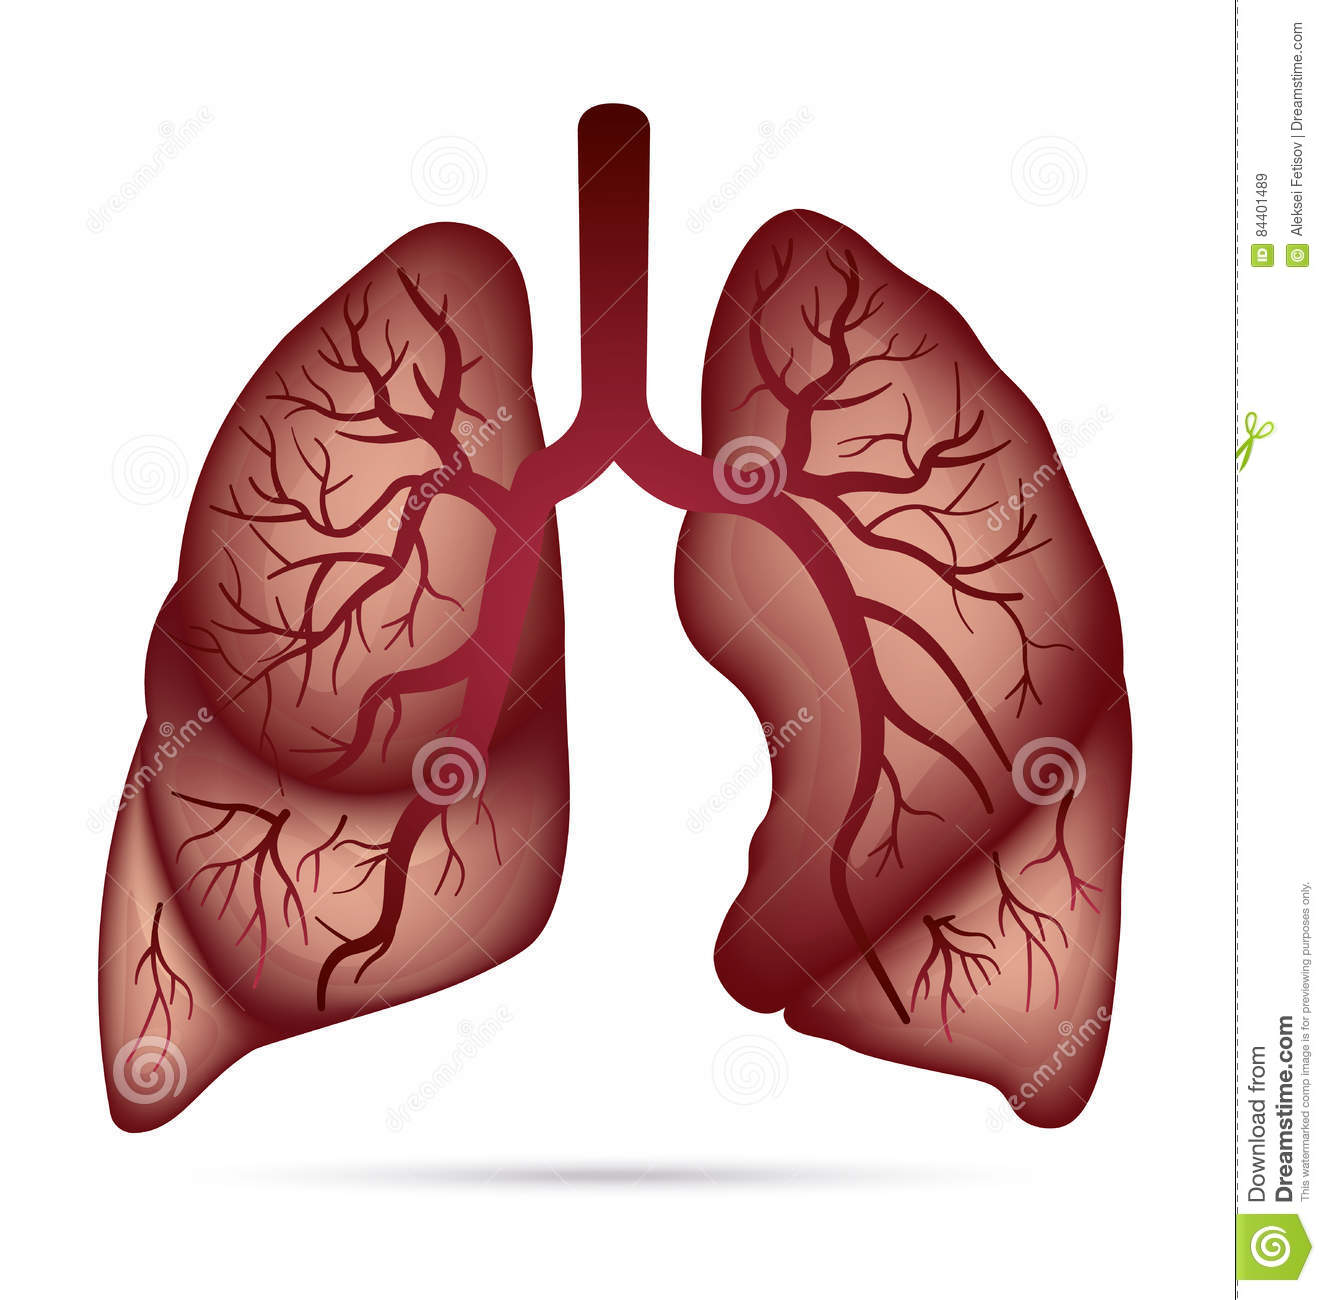 Tuberculosis In Human Lungs Cartoon Vector